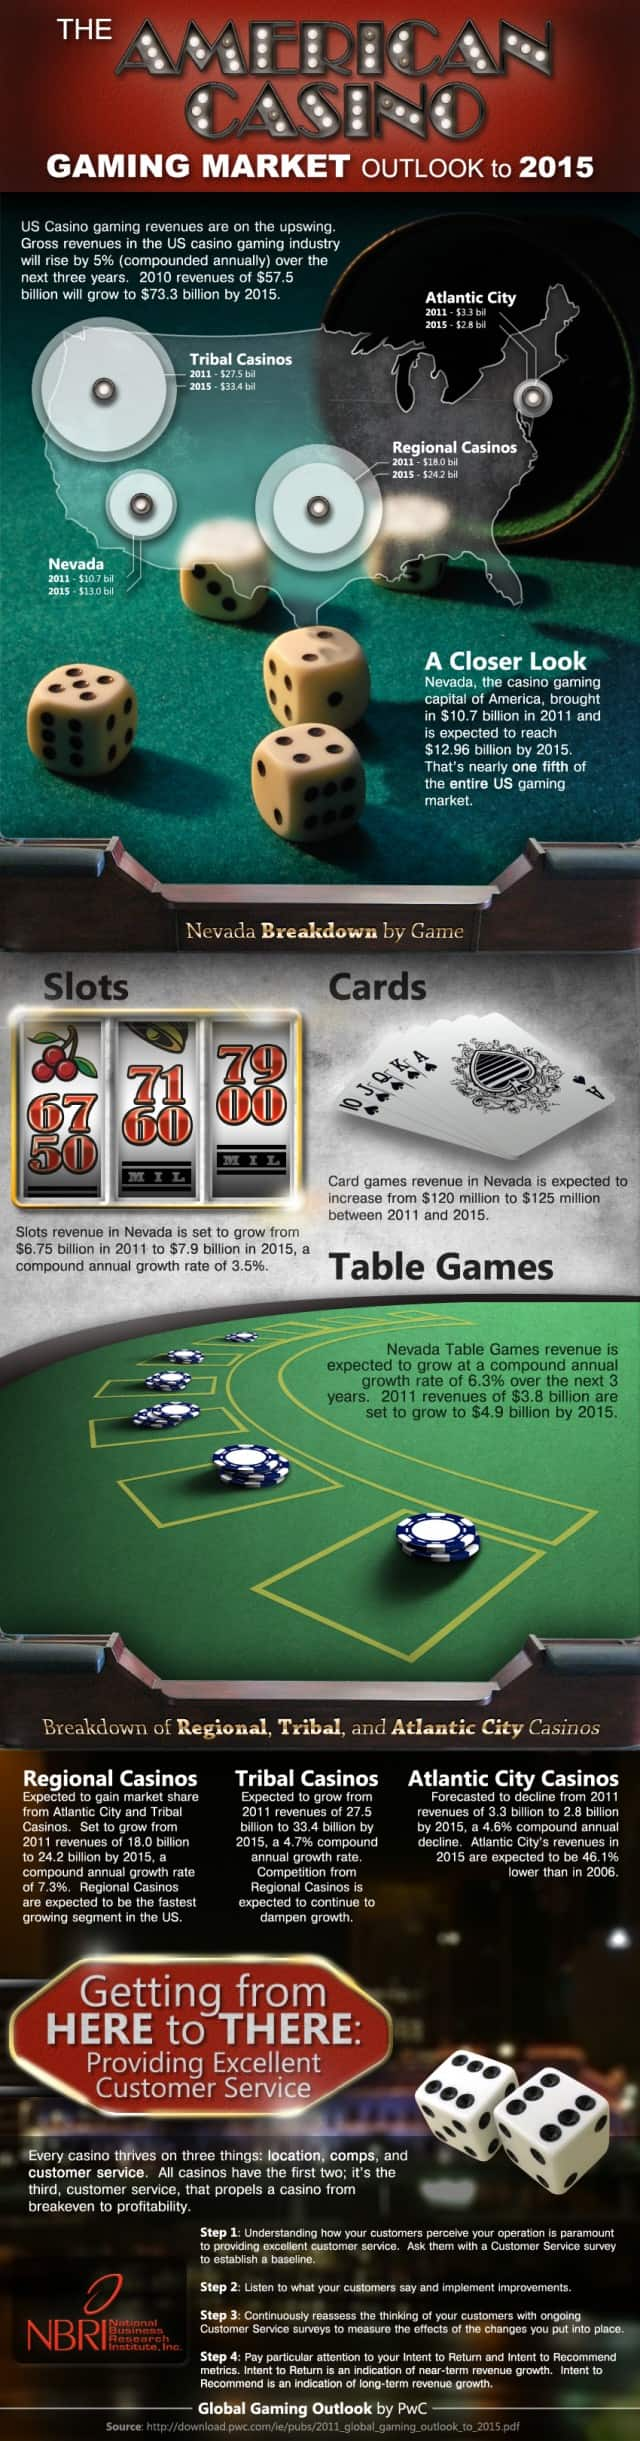 The Growth of Gambling [Infographic]